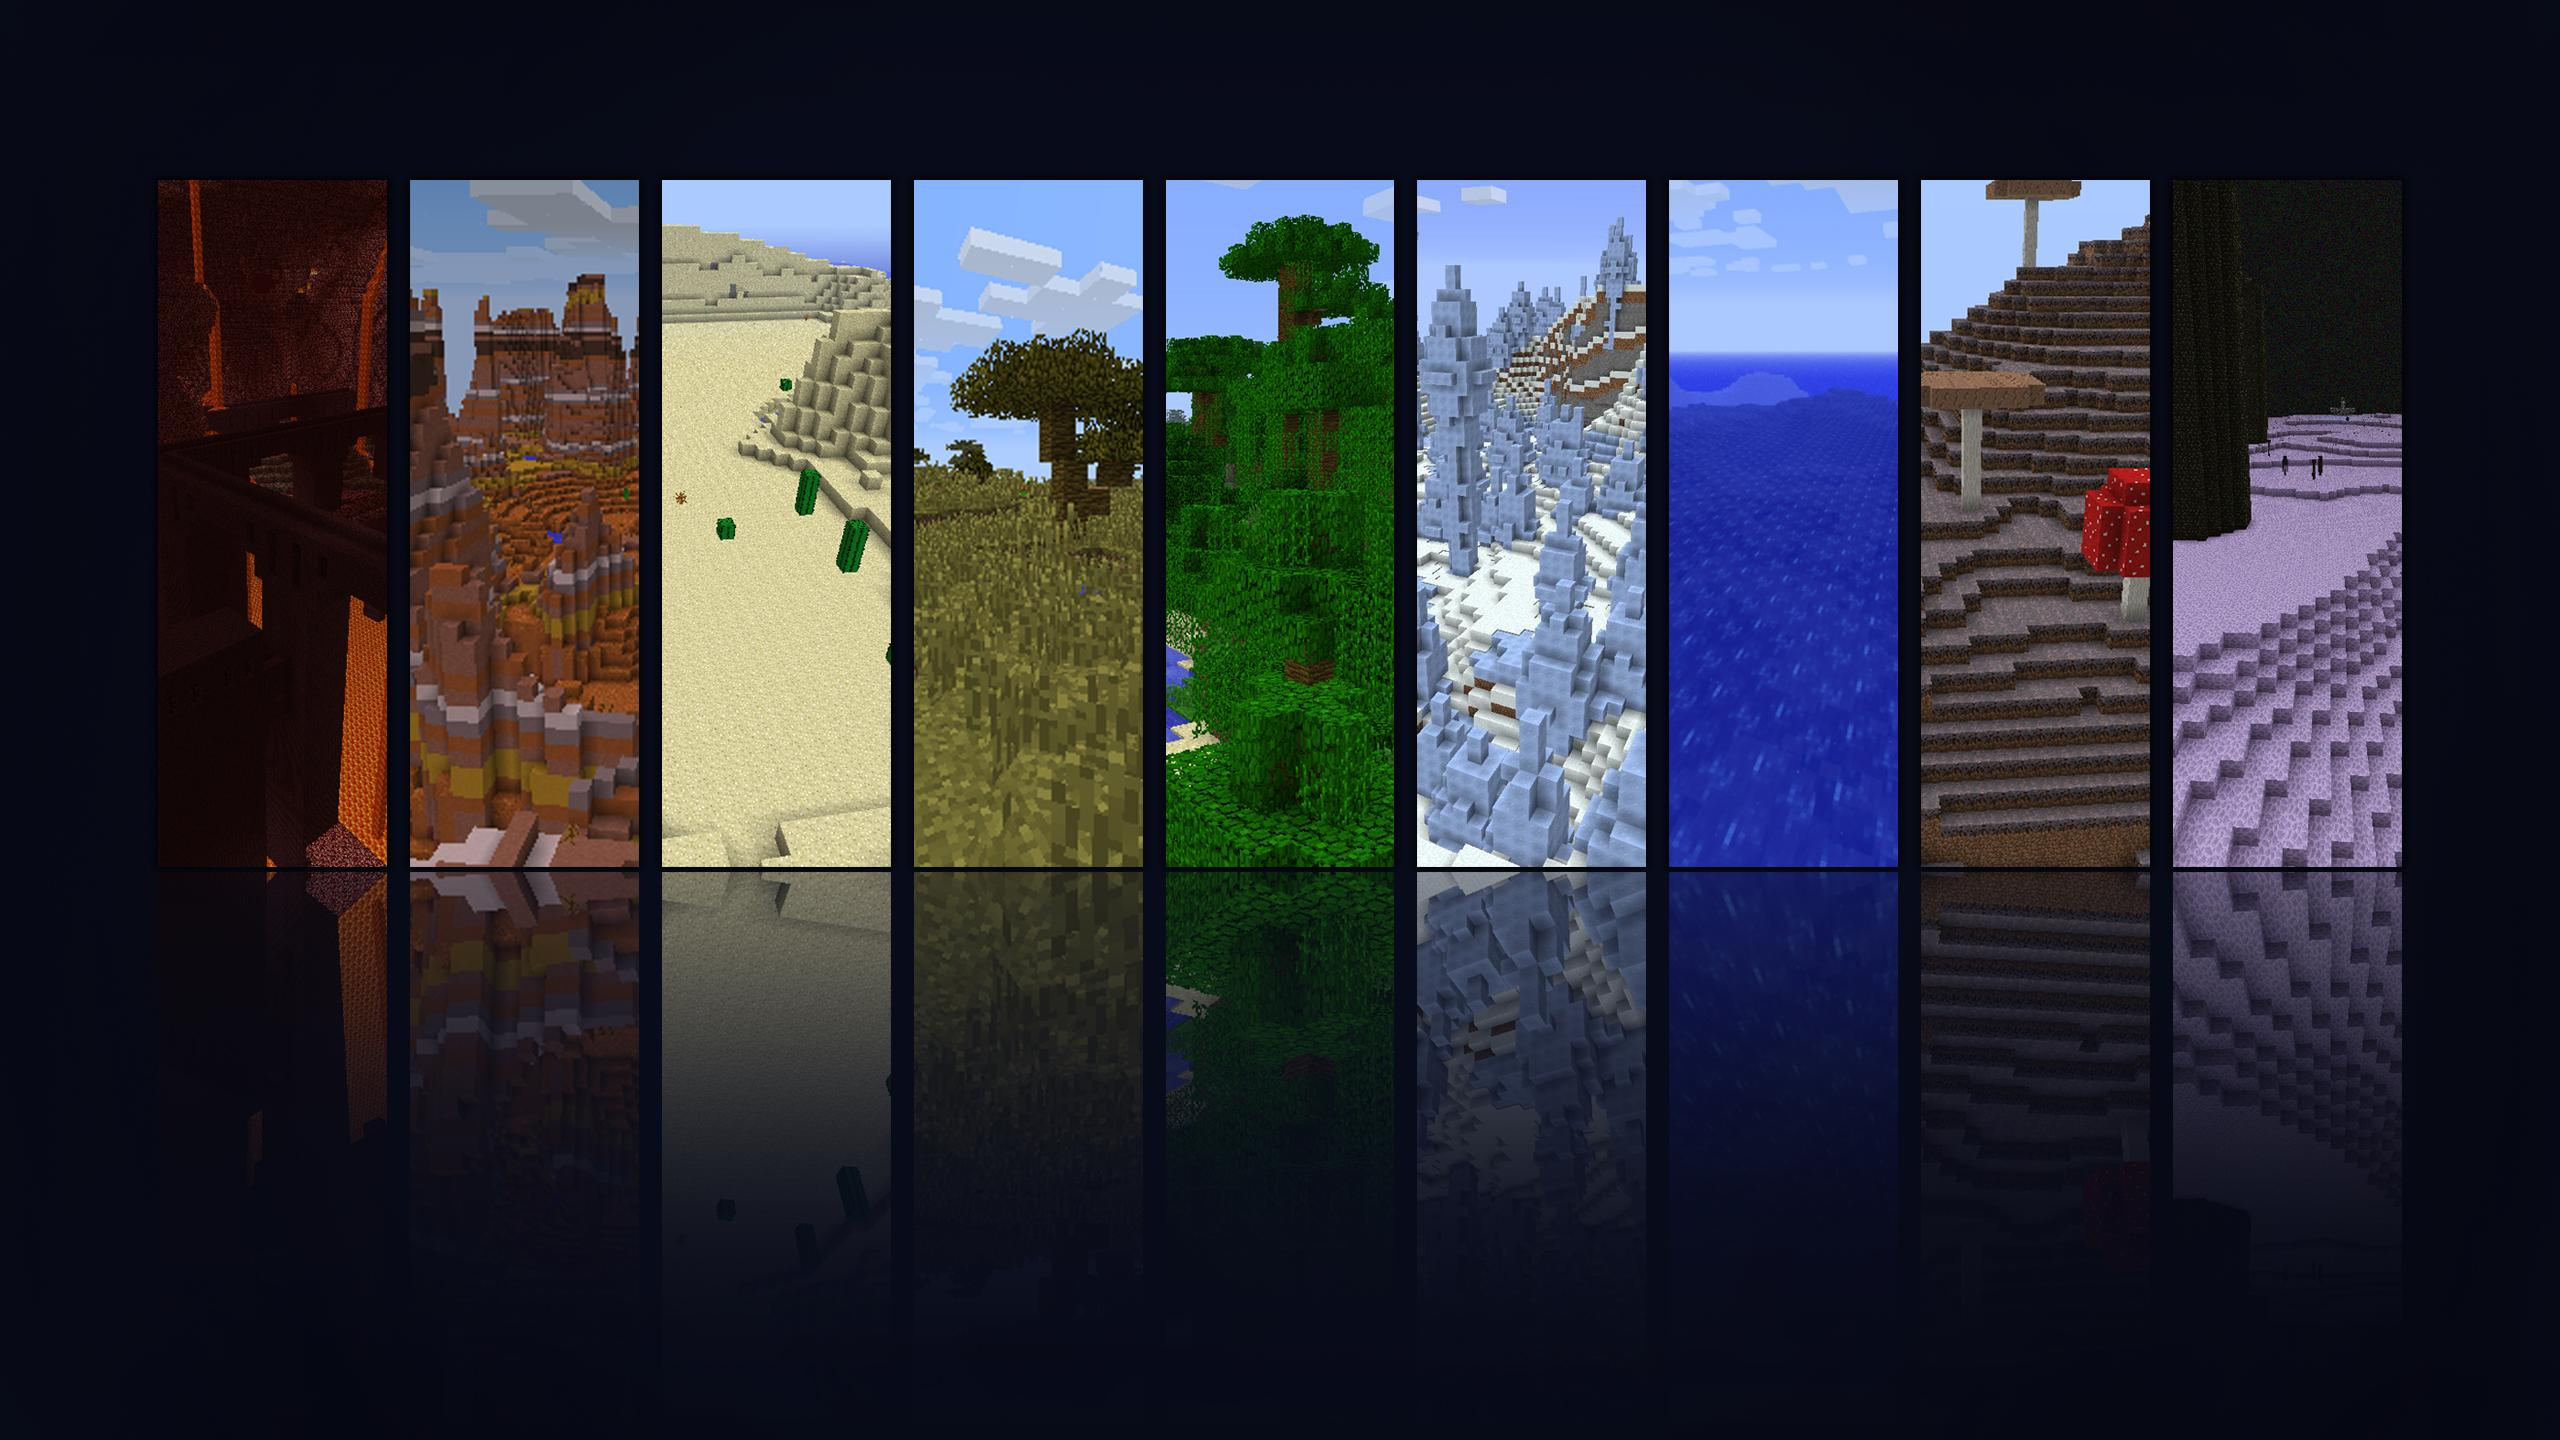 Beautiful Wallpaper Minecraft Plain - minecraft-wallpapers15  Snapshot_274156.jpg